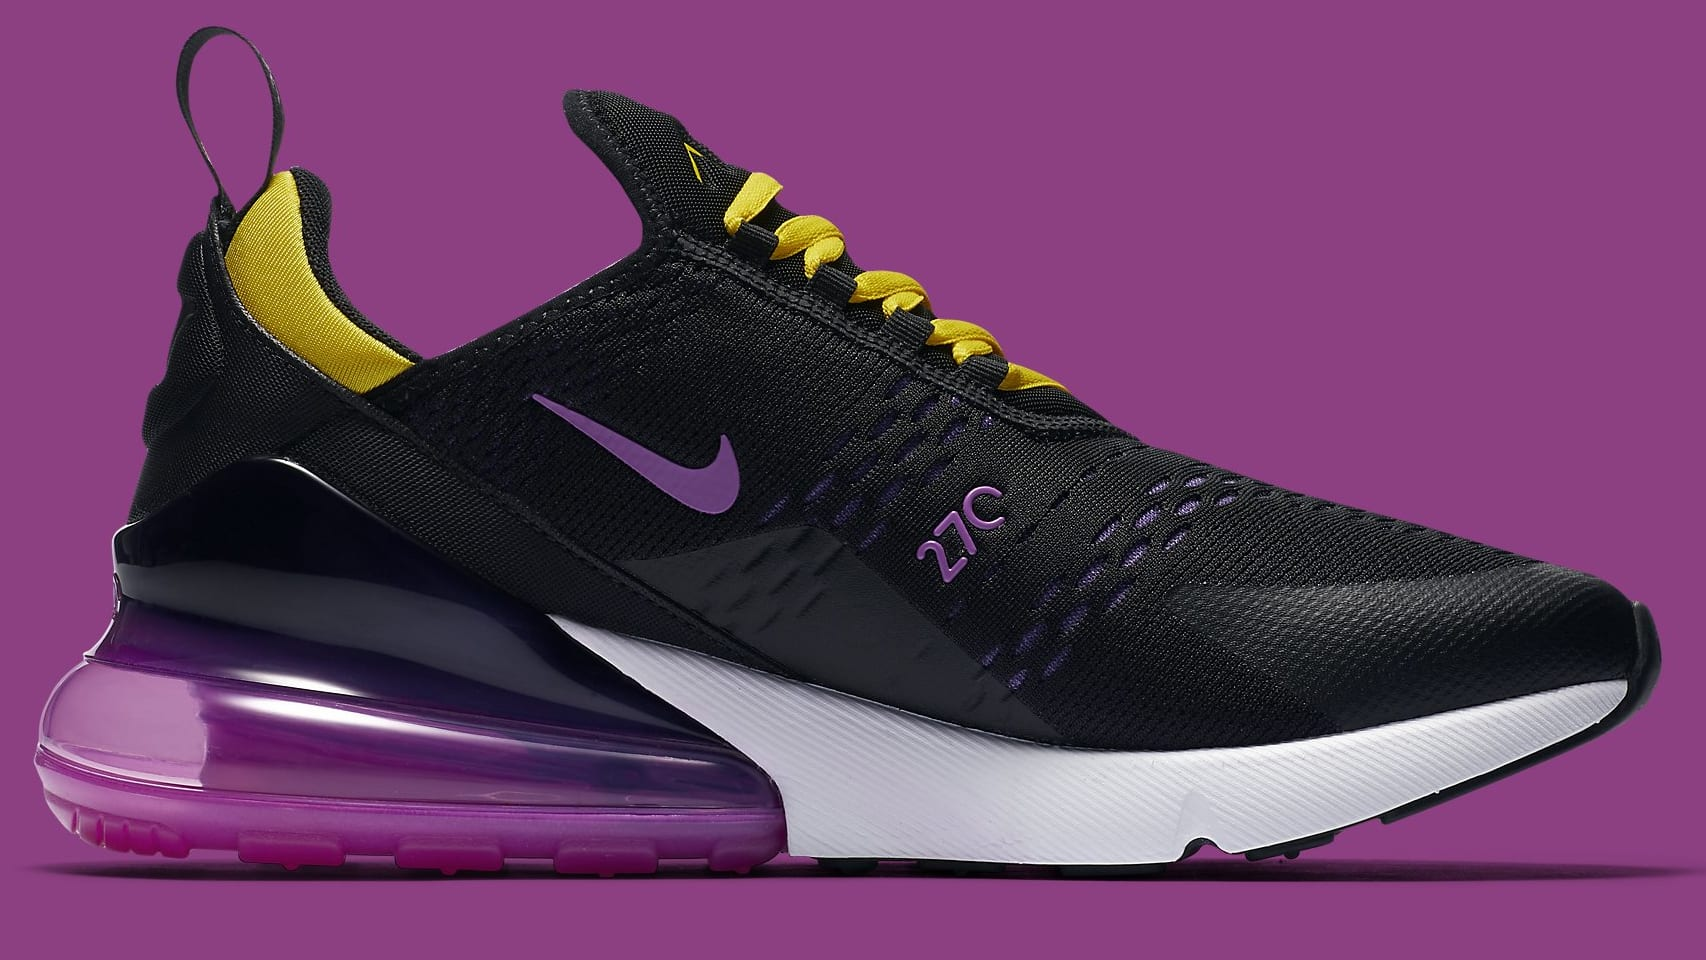 6f74f5b238a Nike Air Max 270 Los Angeles Lakers